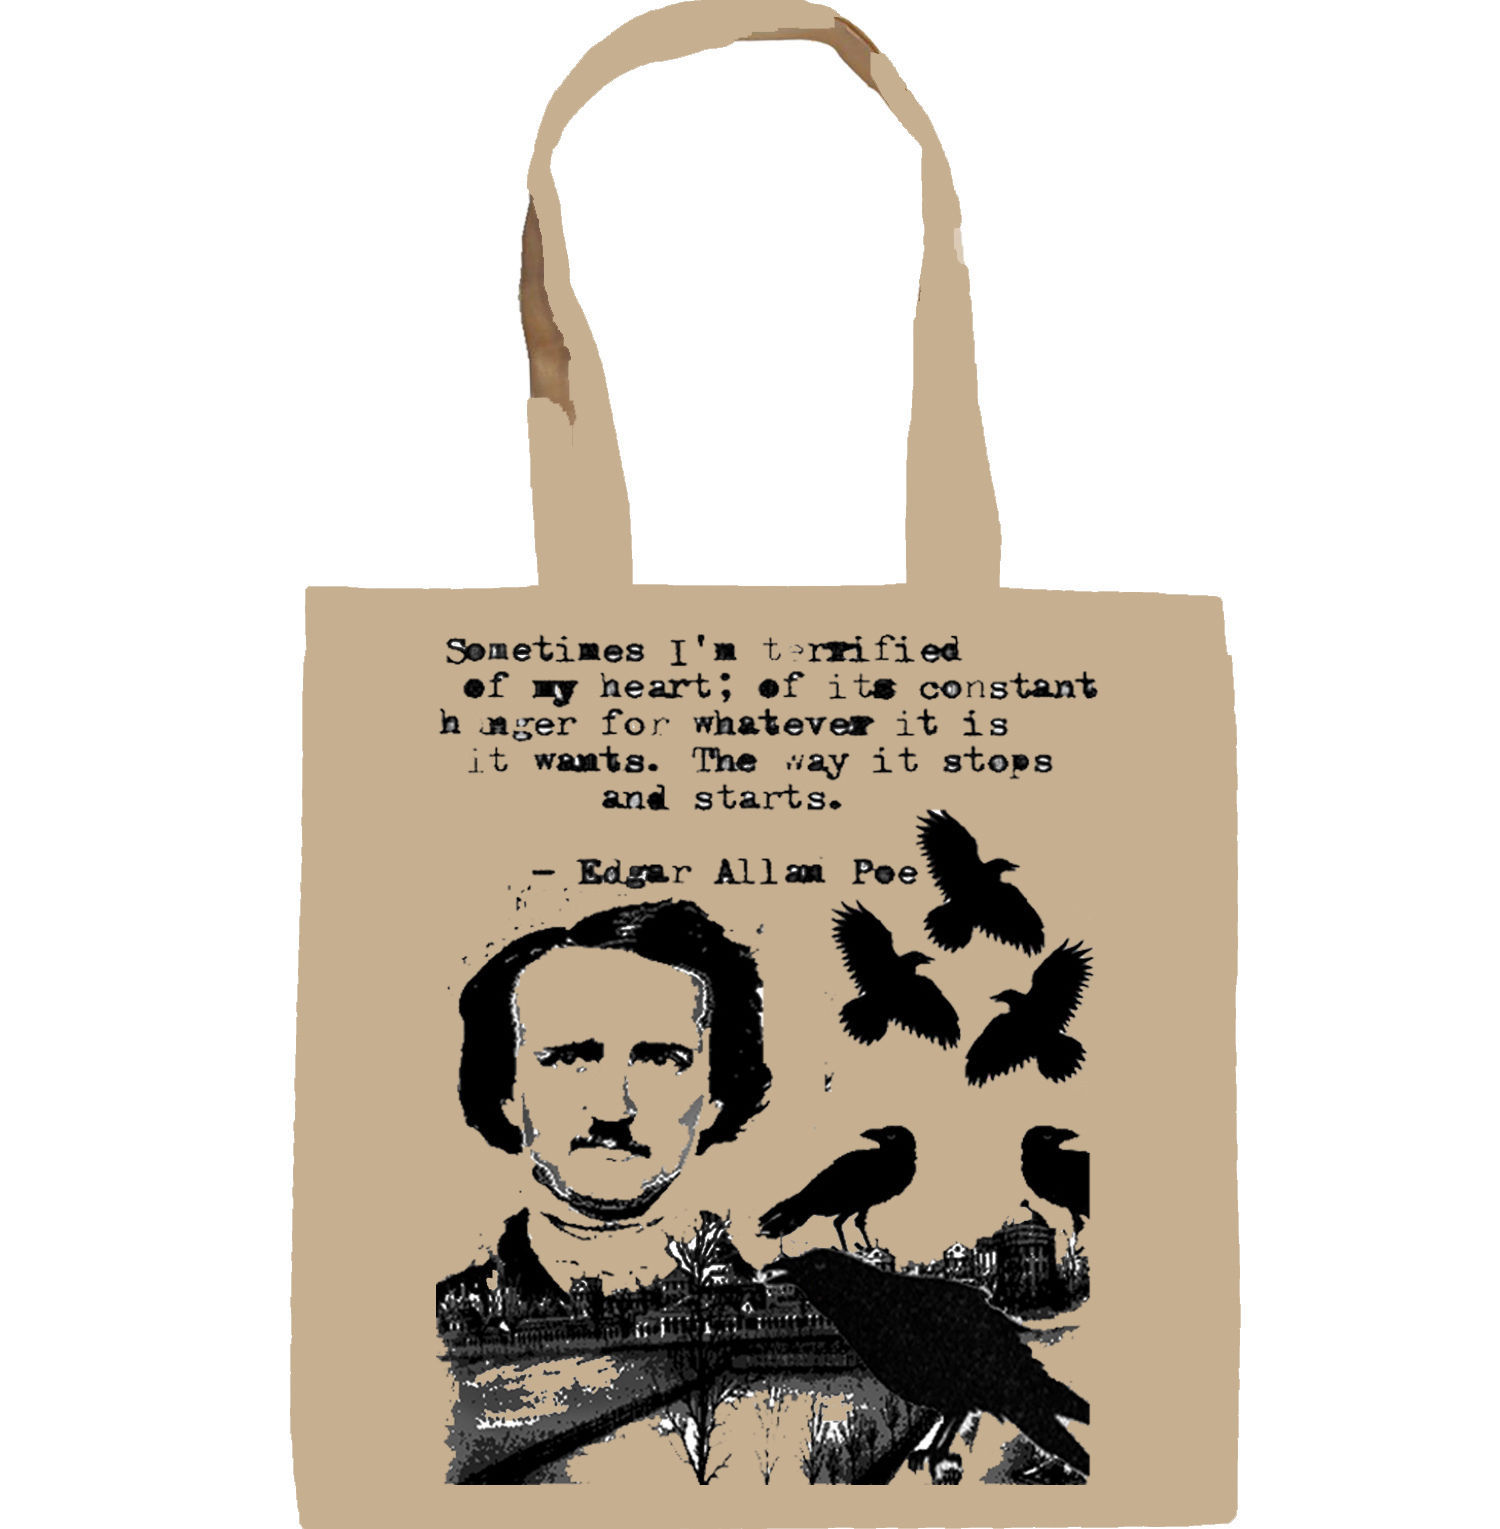 EDGAR ALAN POE SOMETIMES I AM TERRIFIED - NEW AMAZING GRAPHIC HAND BAG/TOTE BAG